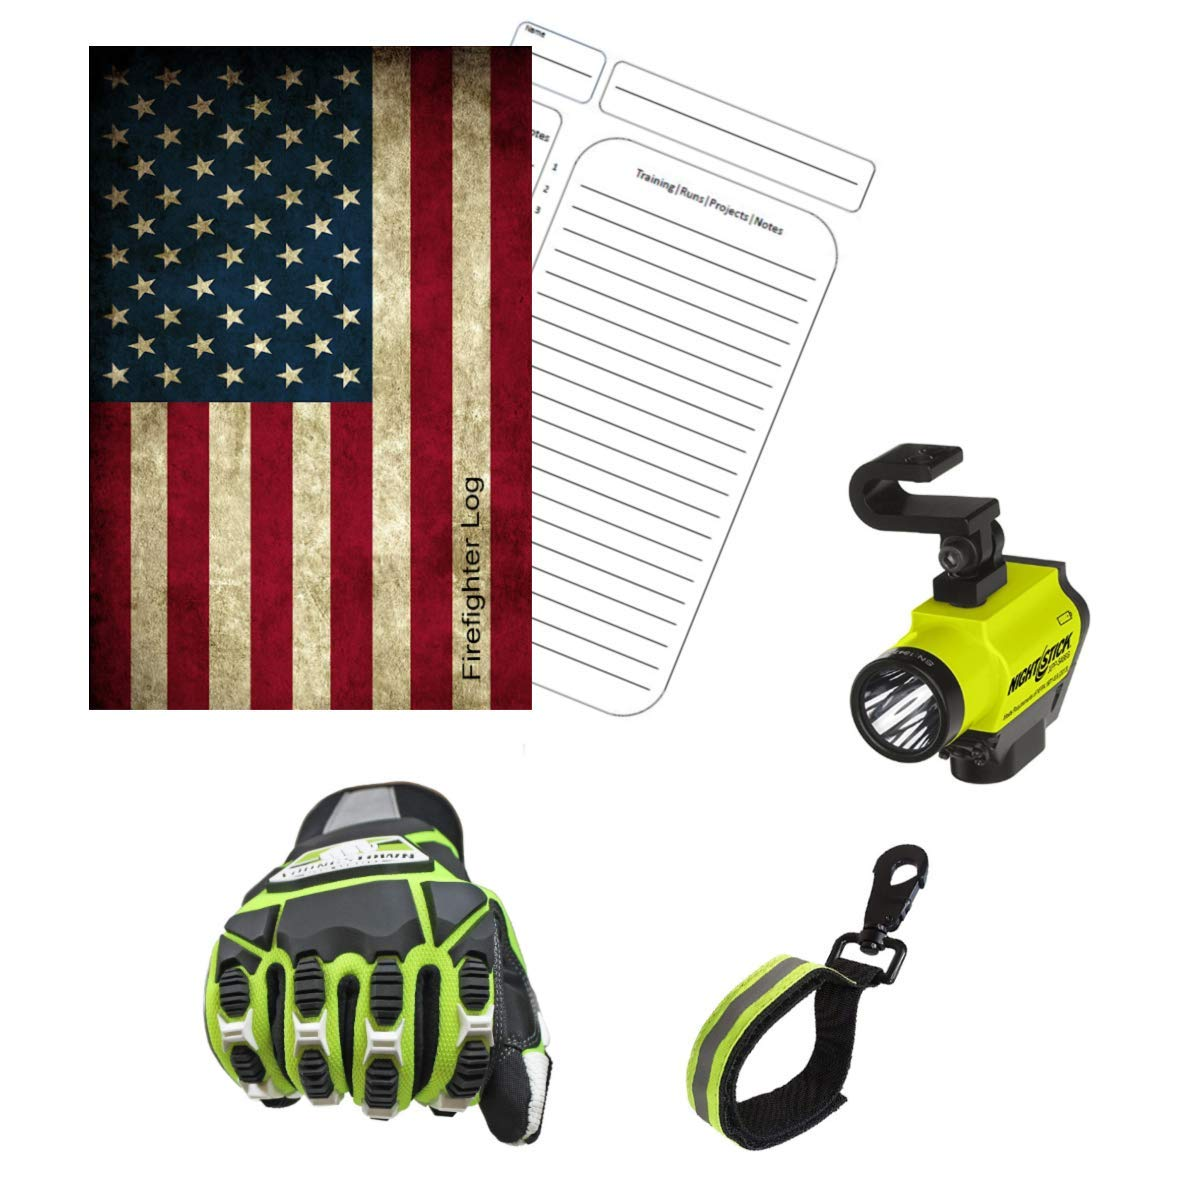 Firefighter Log Book lime Green Tactical Flashlight Tools Firefighter Bundle Glove Strap Tactical Light Helmet Mounted 1 Cut Resistant Extrication Gloves Large 1 | 1 | 1 Track trainin Unknown XPP-5466G